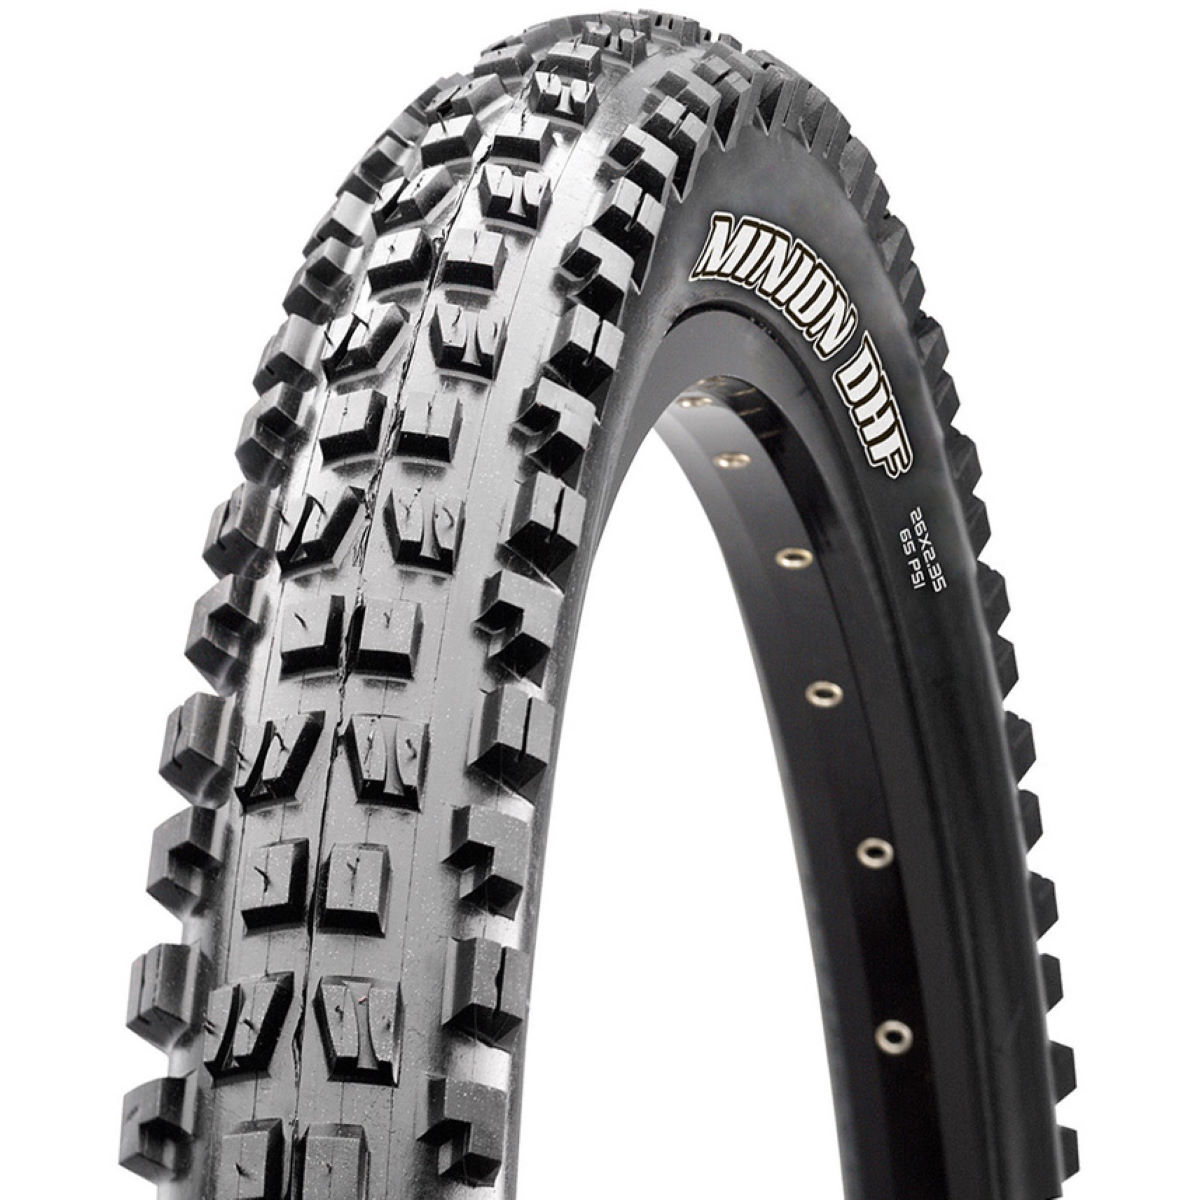 Maxxis Minion DHF MTB Tyre - 3C - EXO+ - TR   Tyres